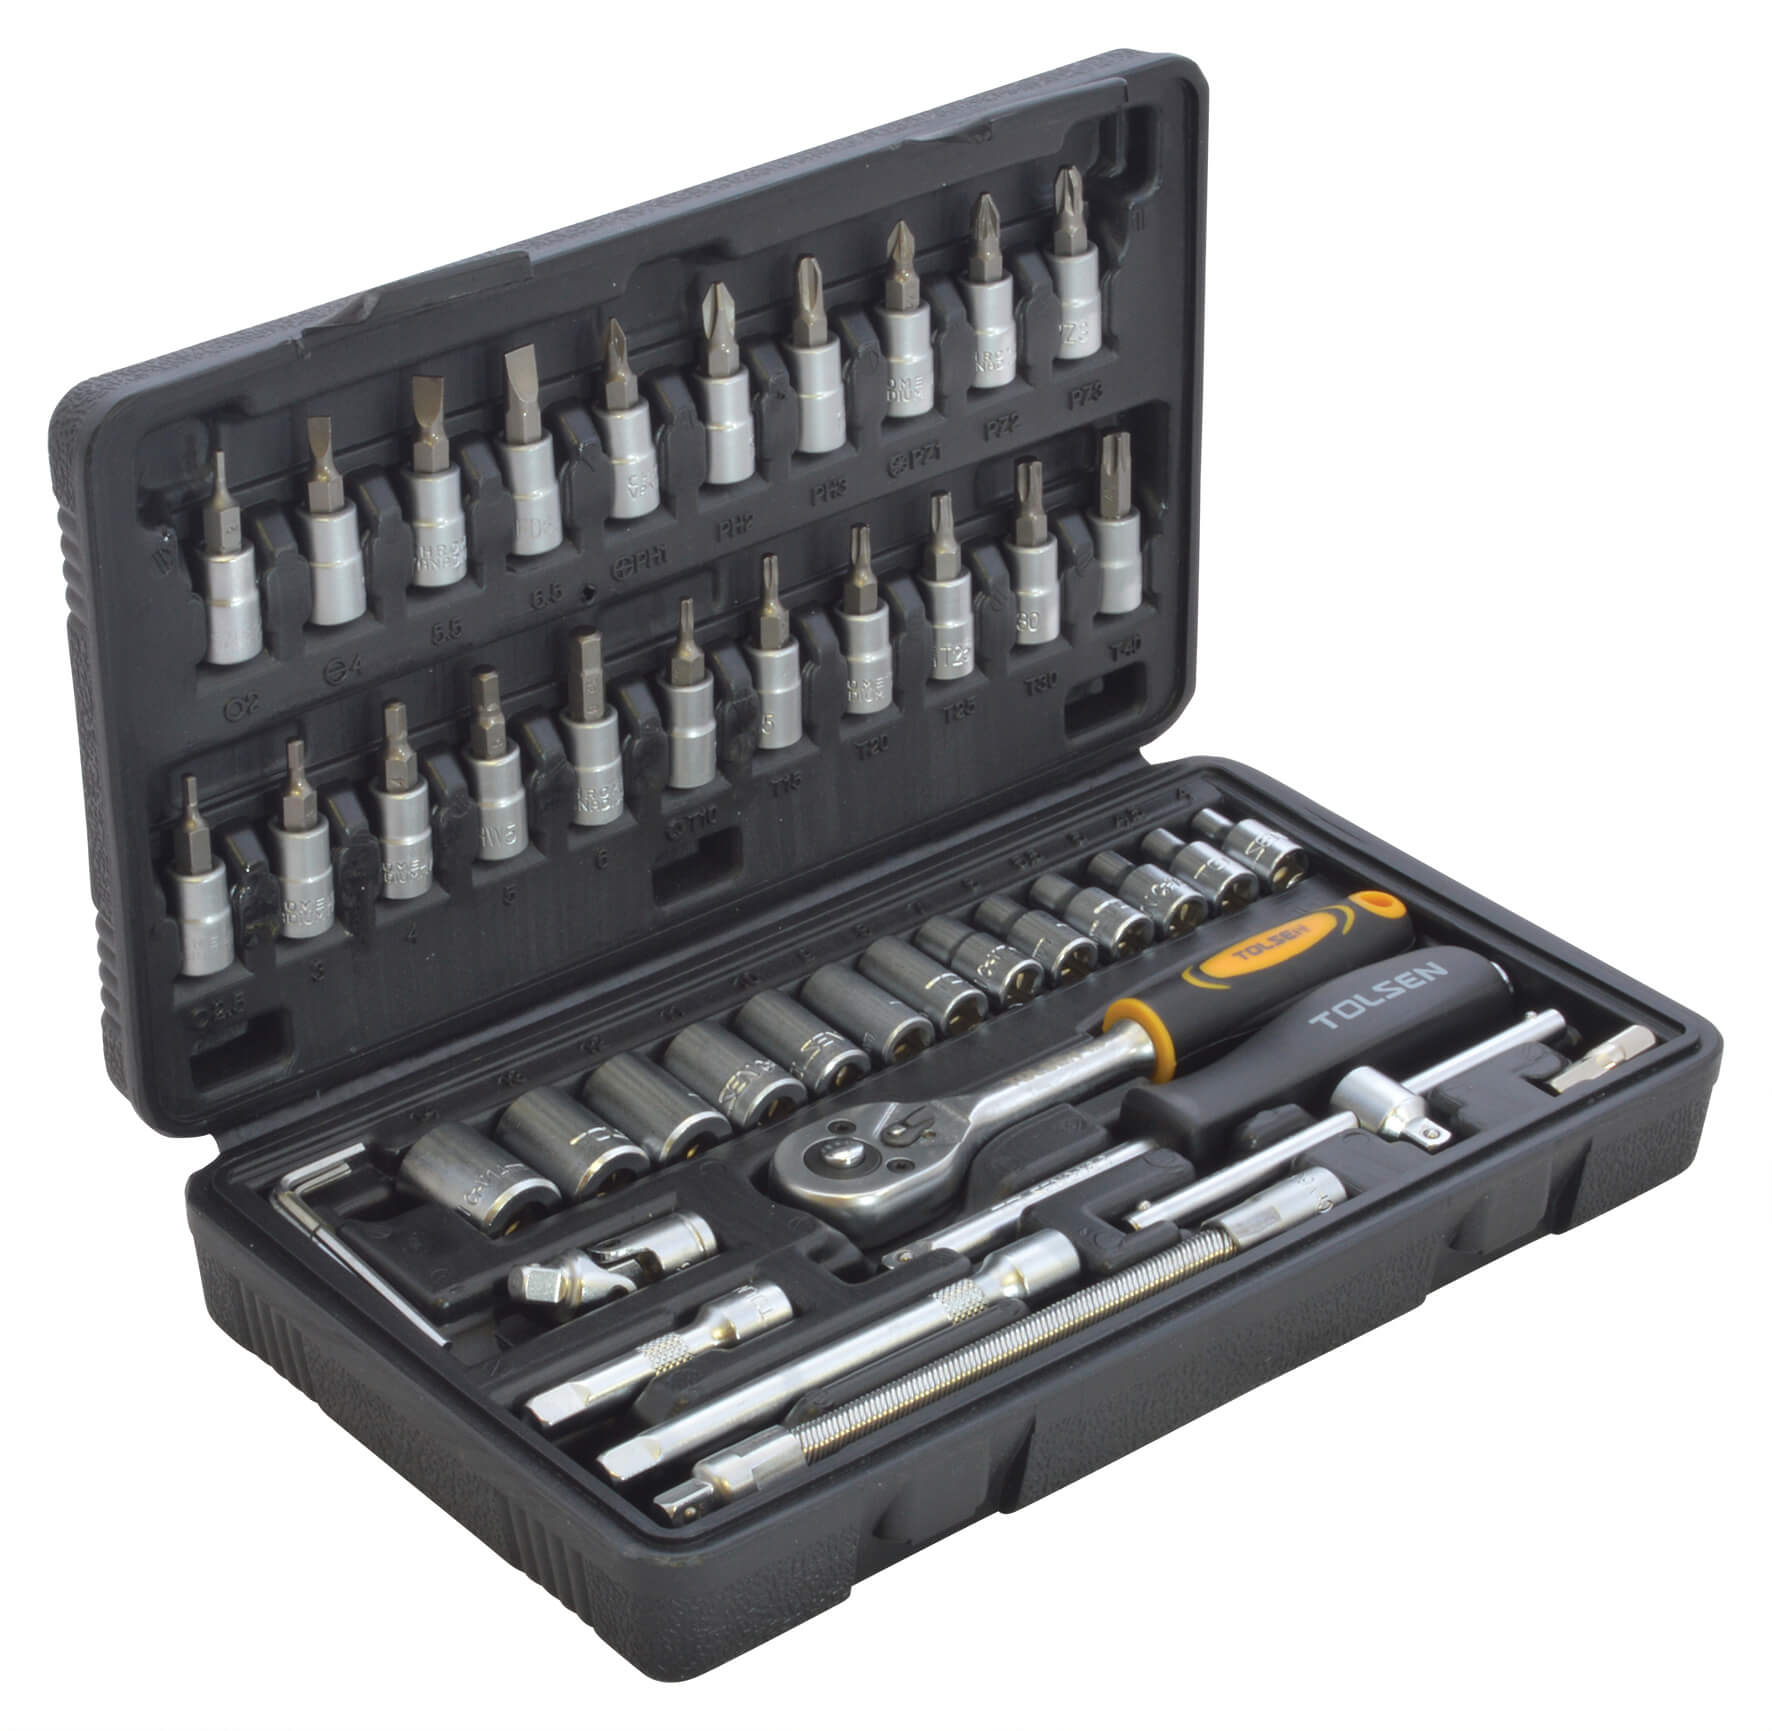 Industrial Socket Set - 1/4